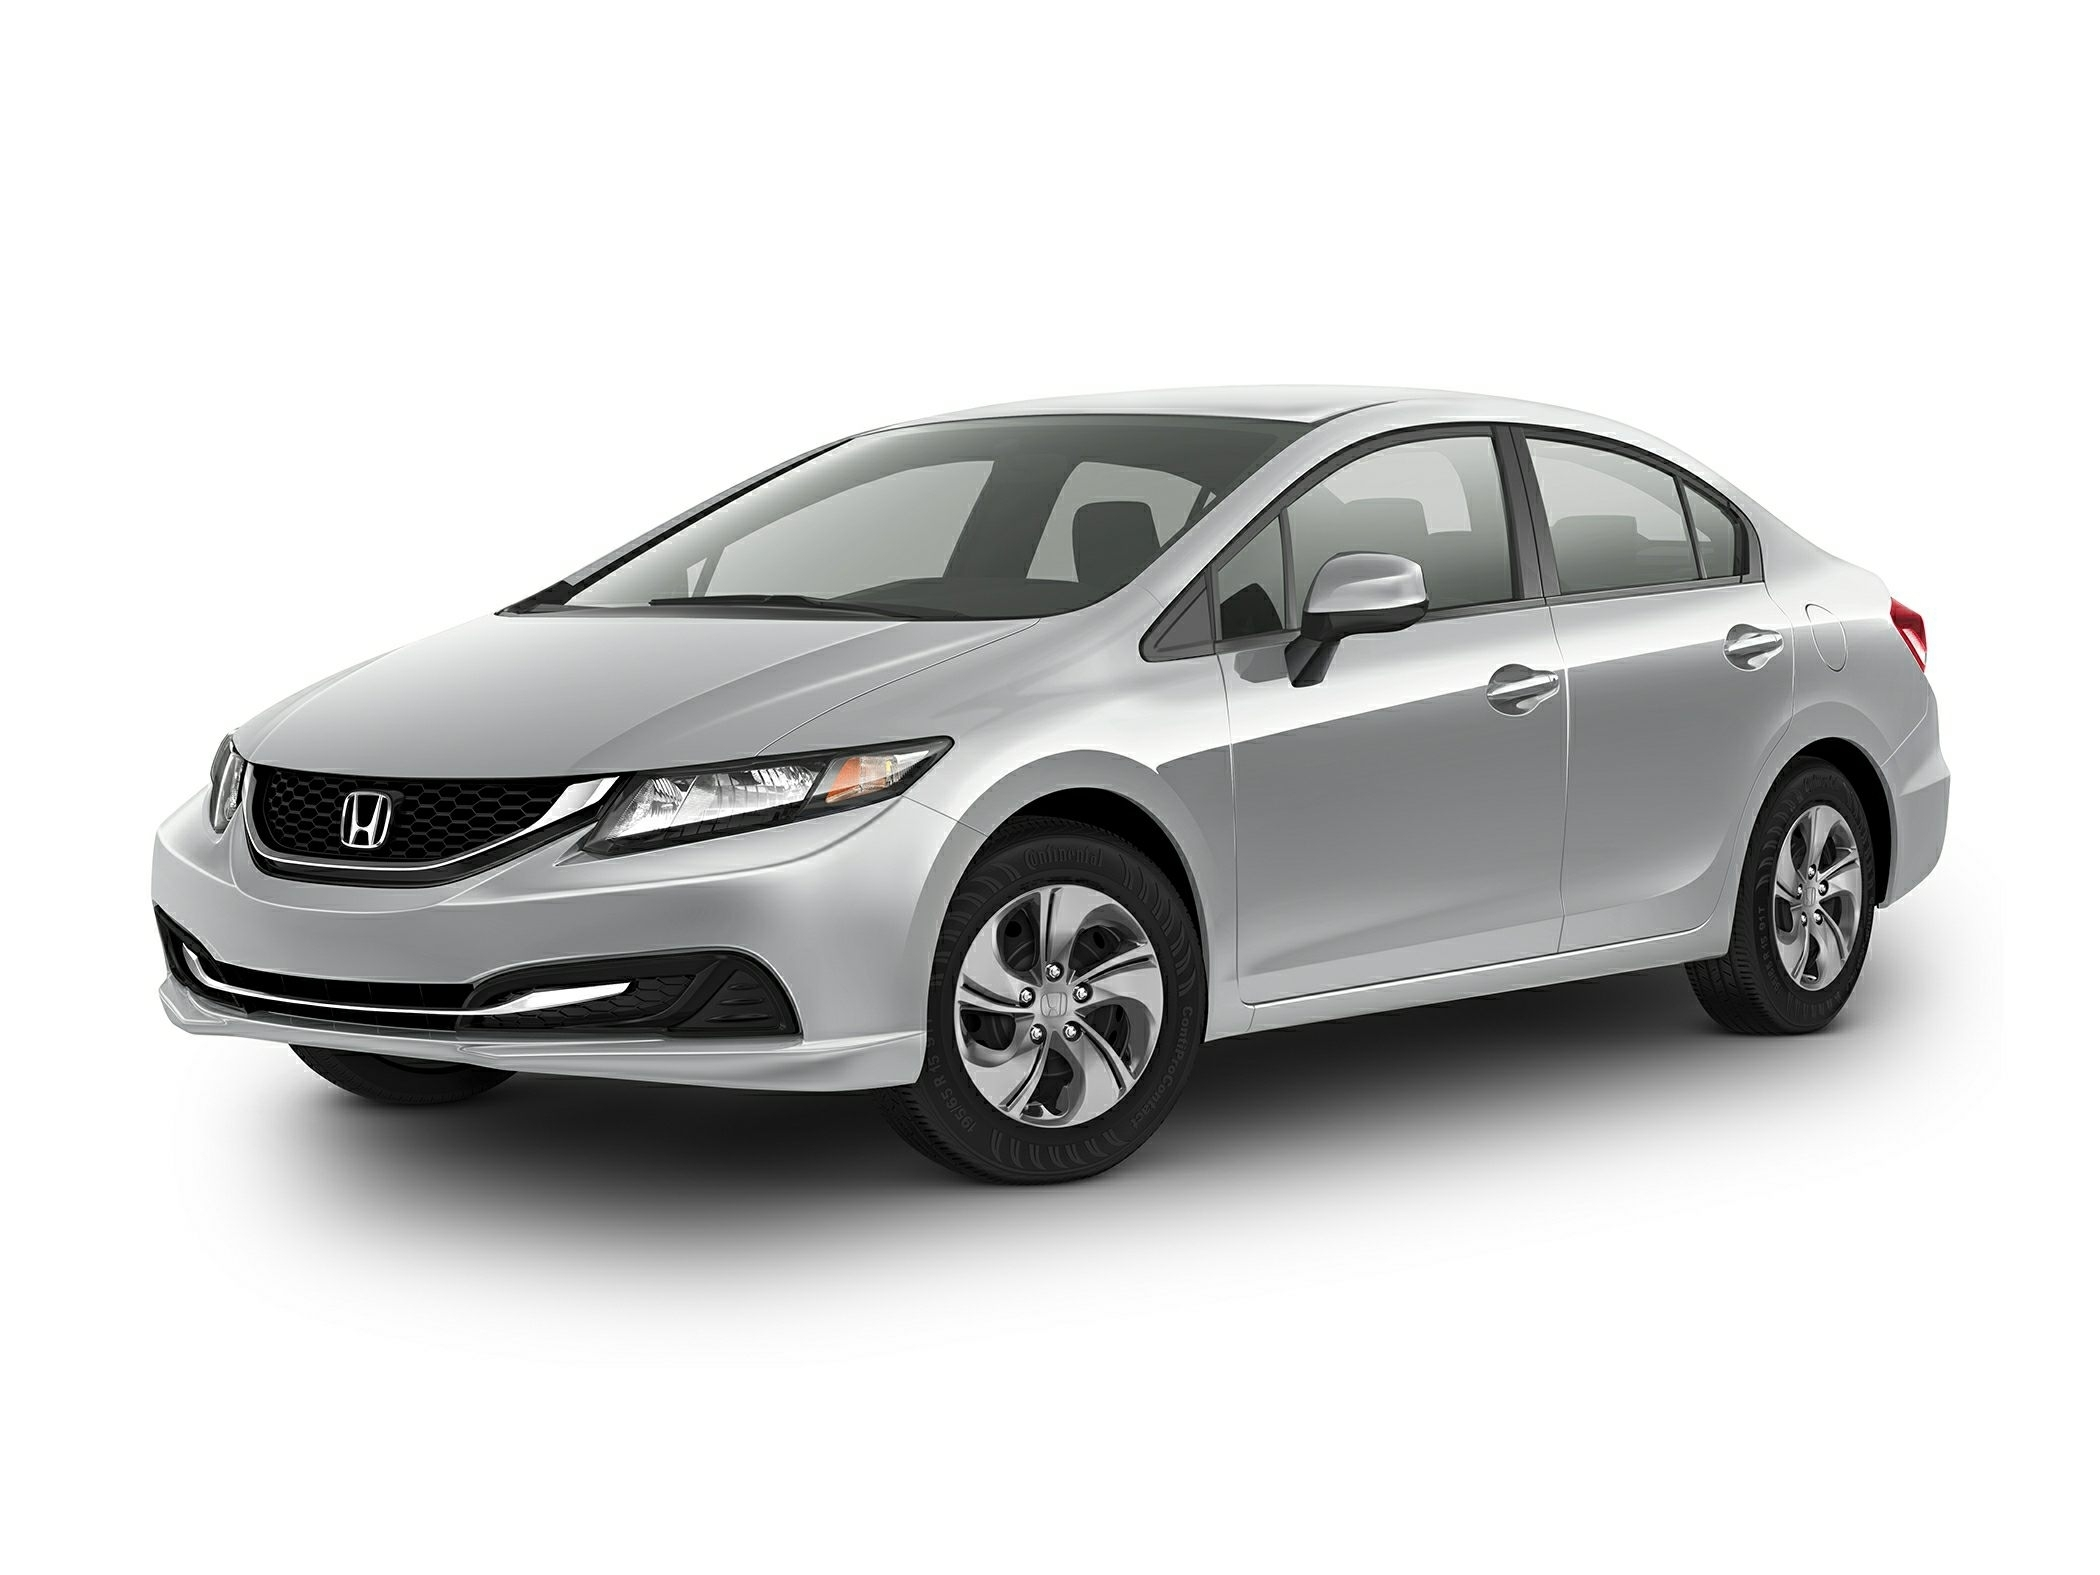 2015 Honda Accord Invoice